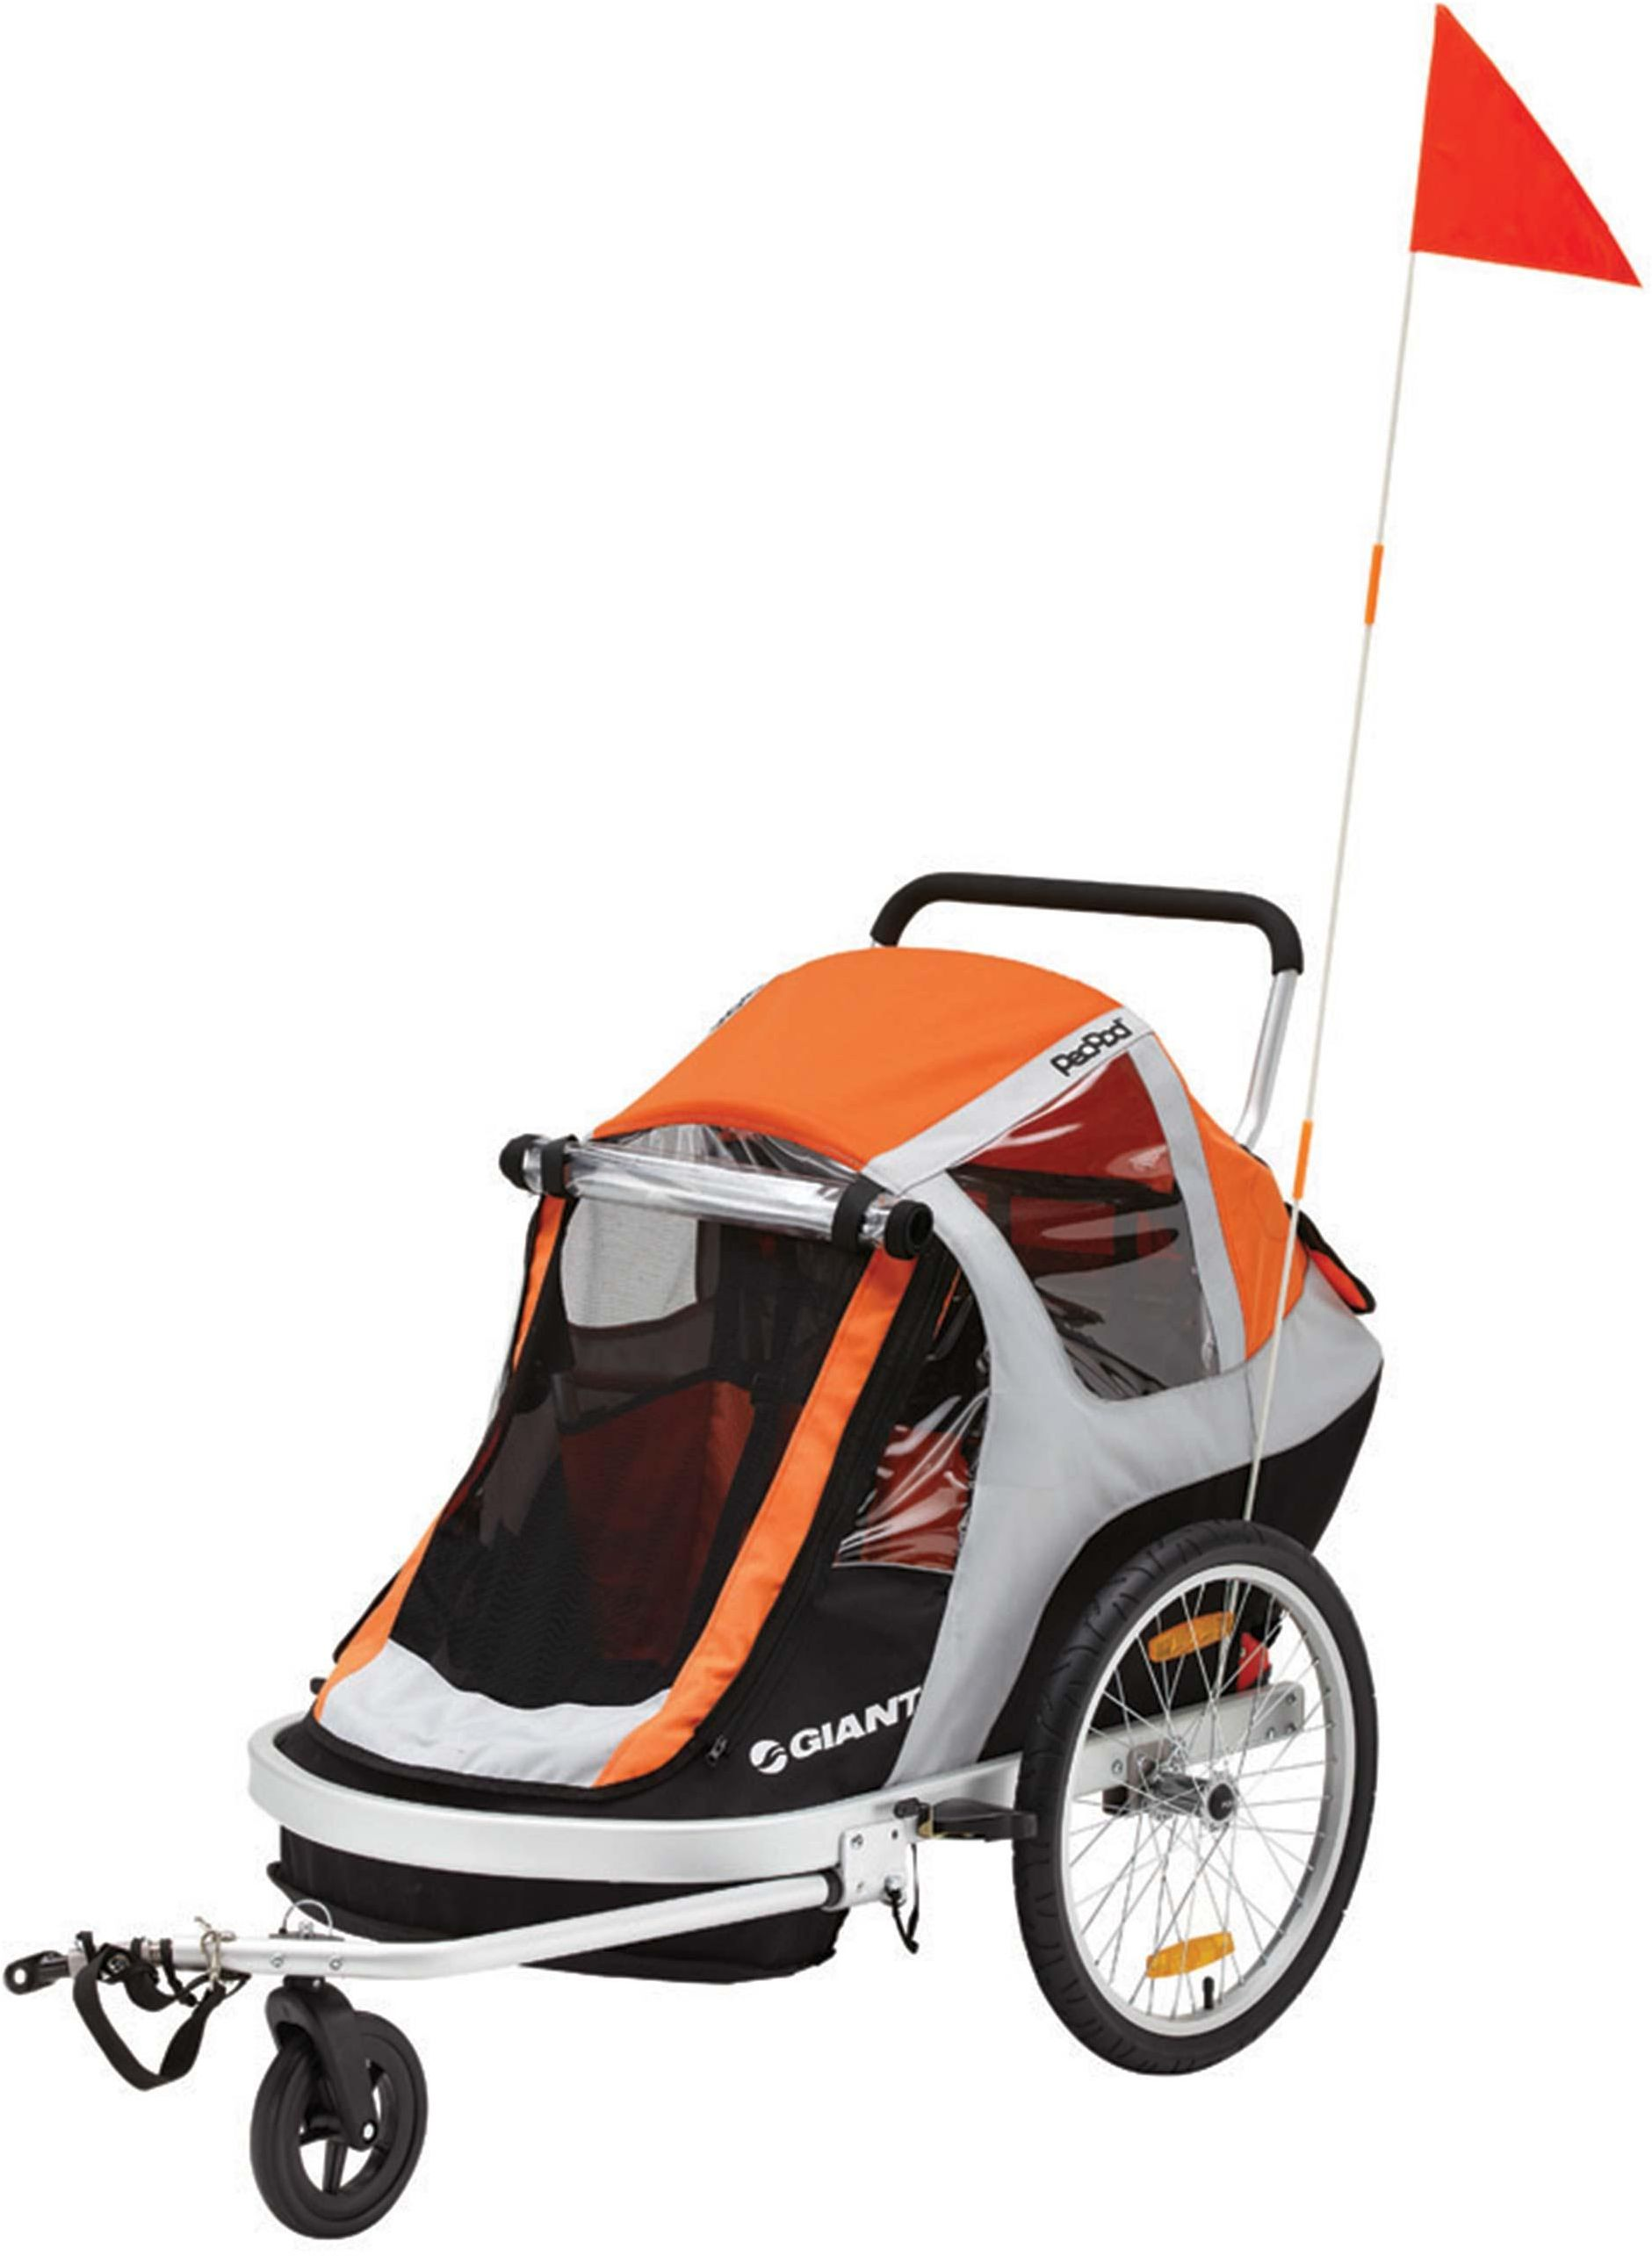 Giant Peapod Child Carrier Bike Trailer 2013 Review